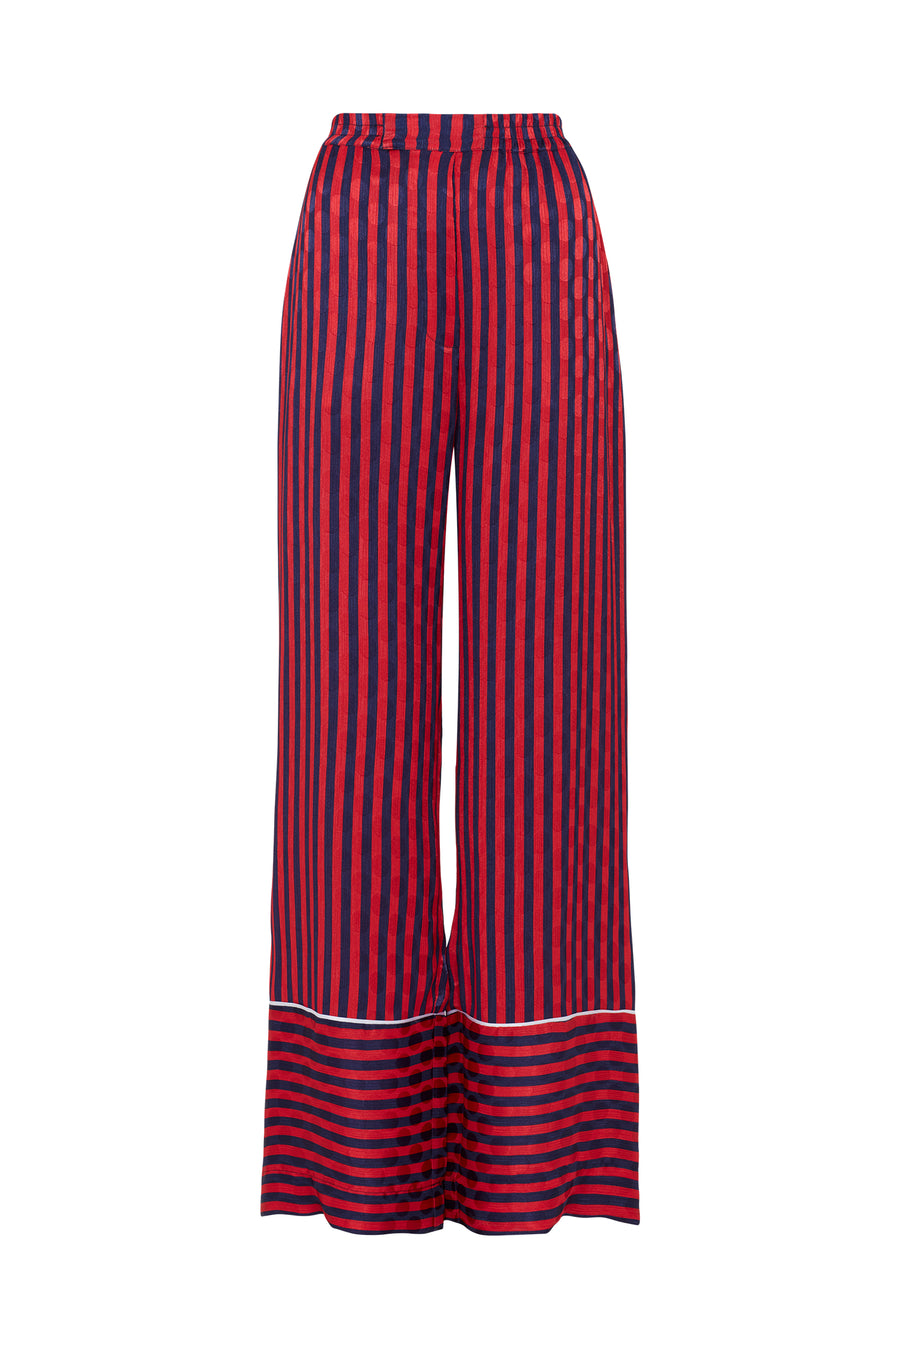 Red and Navy Stripped Pyjama Style Trousers by House of Holland